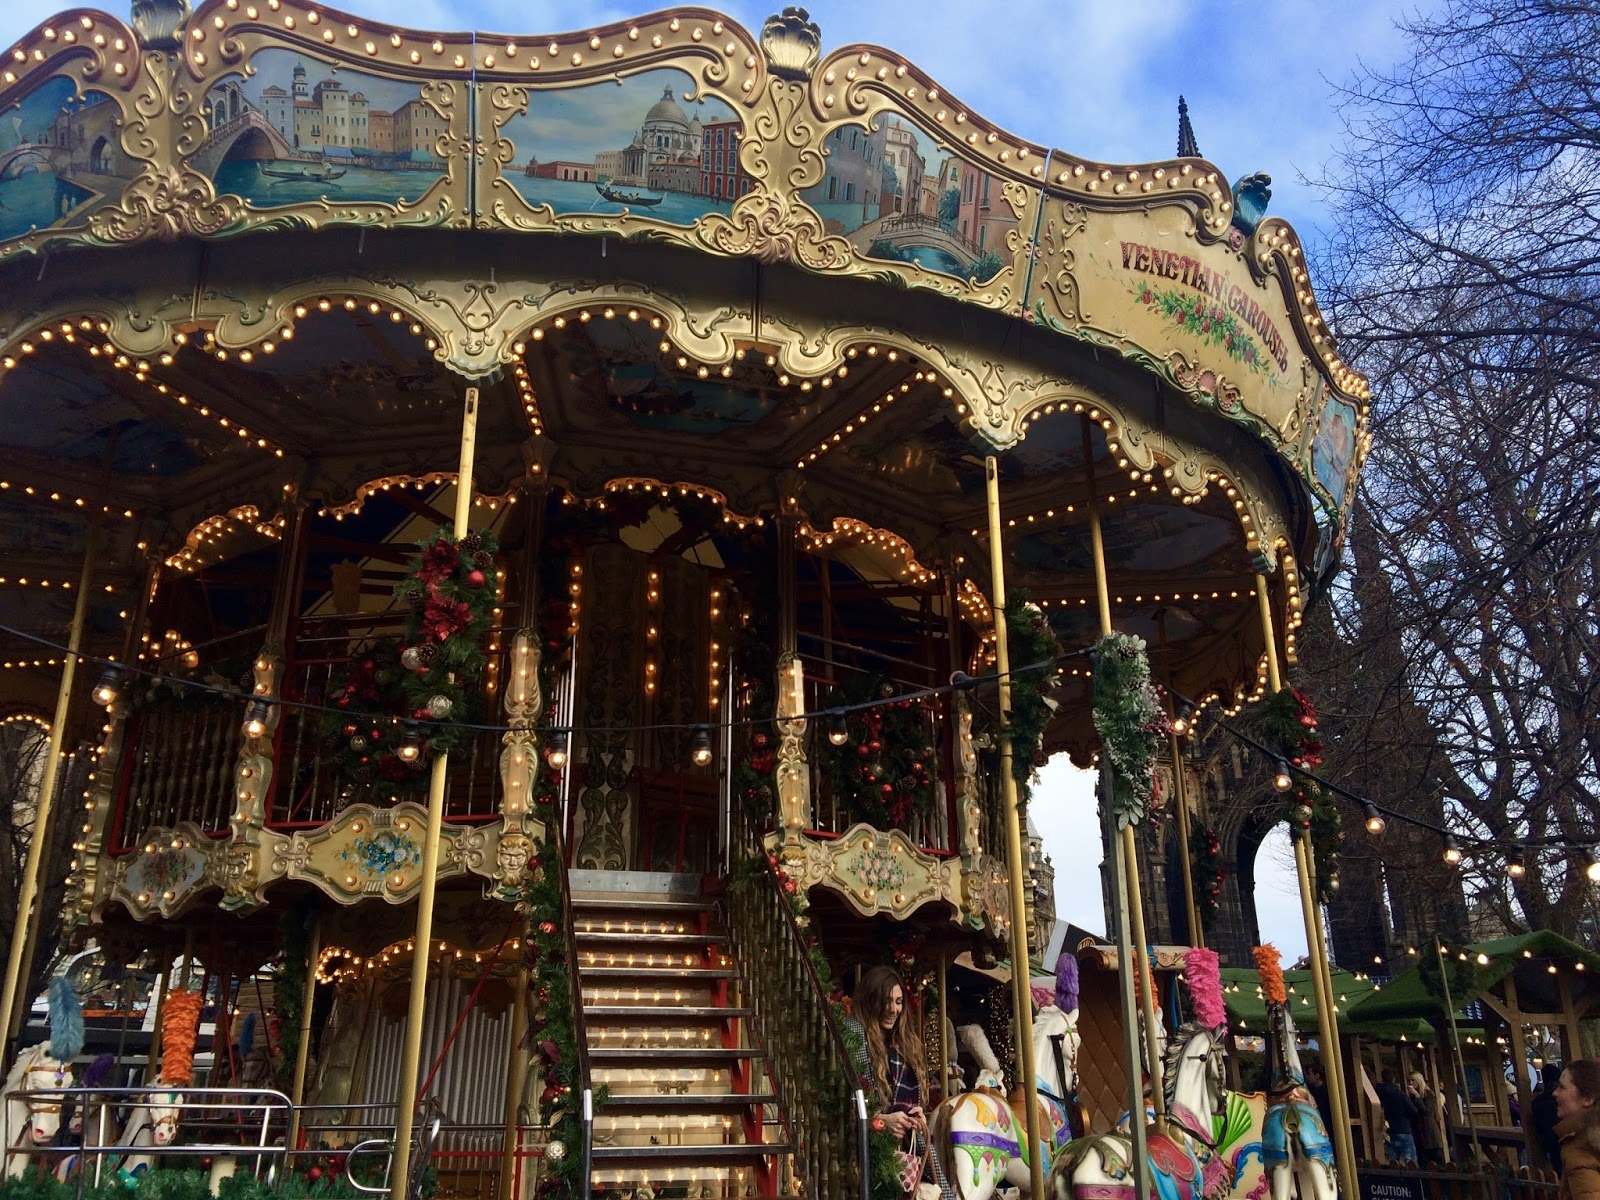 Edinburgh Christmas Carousel 2016